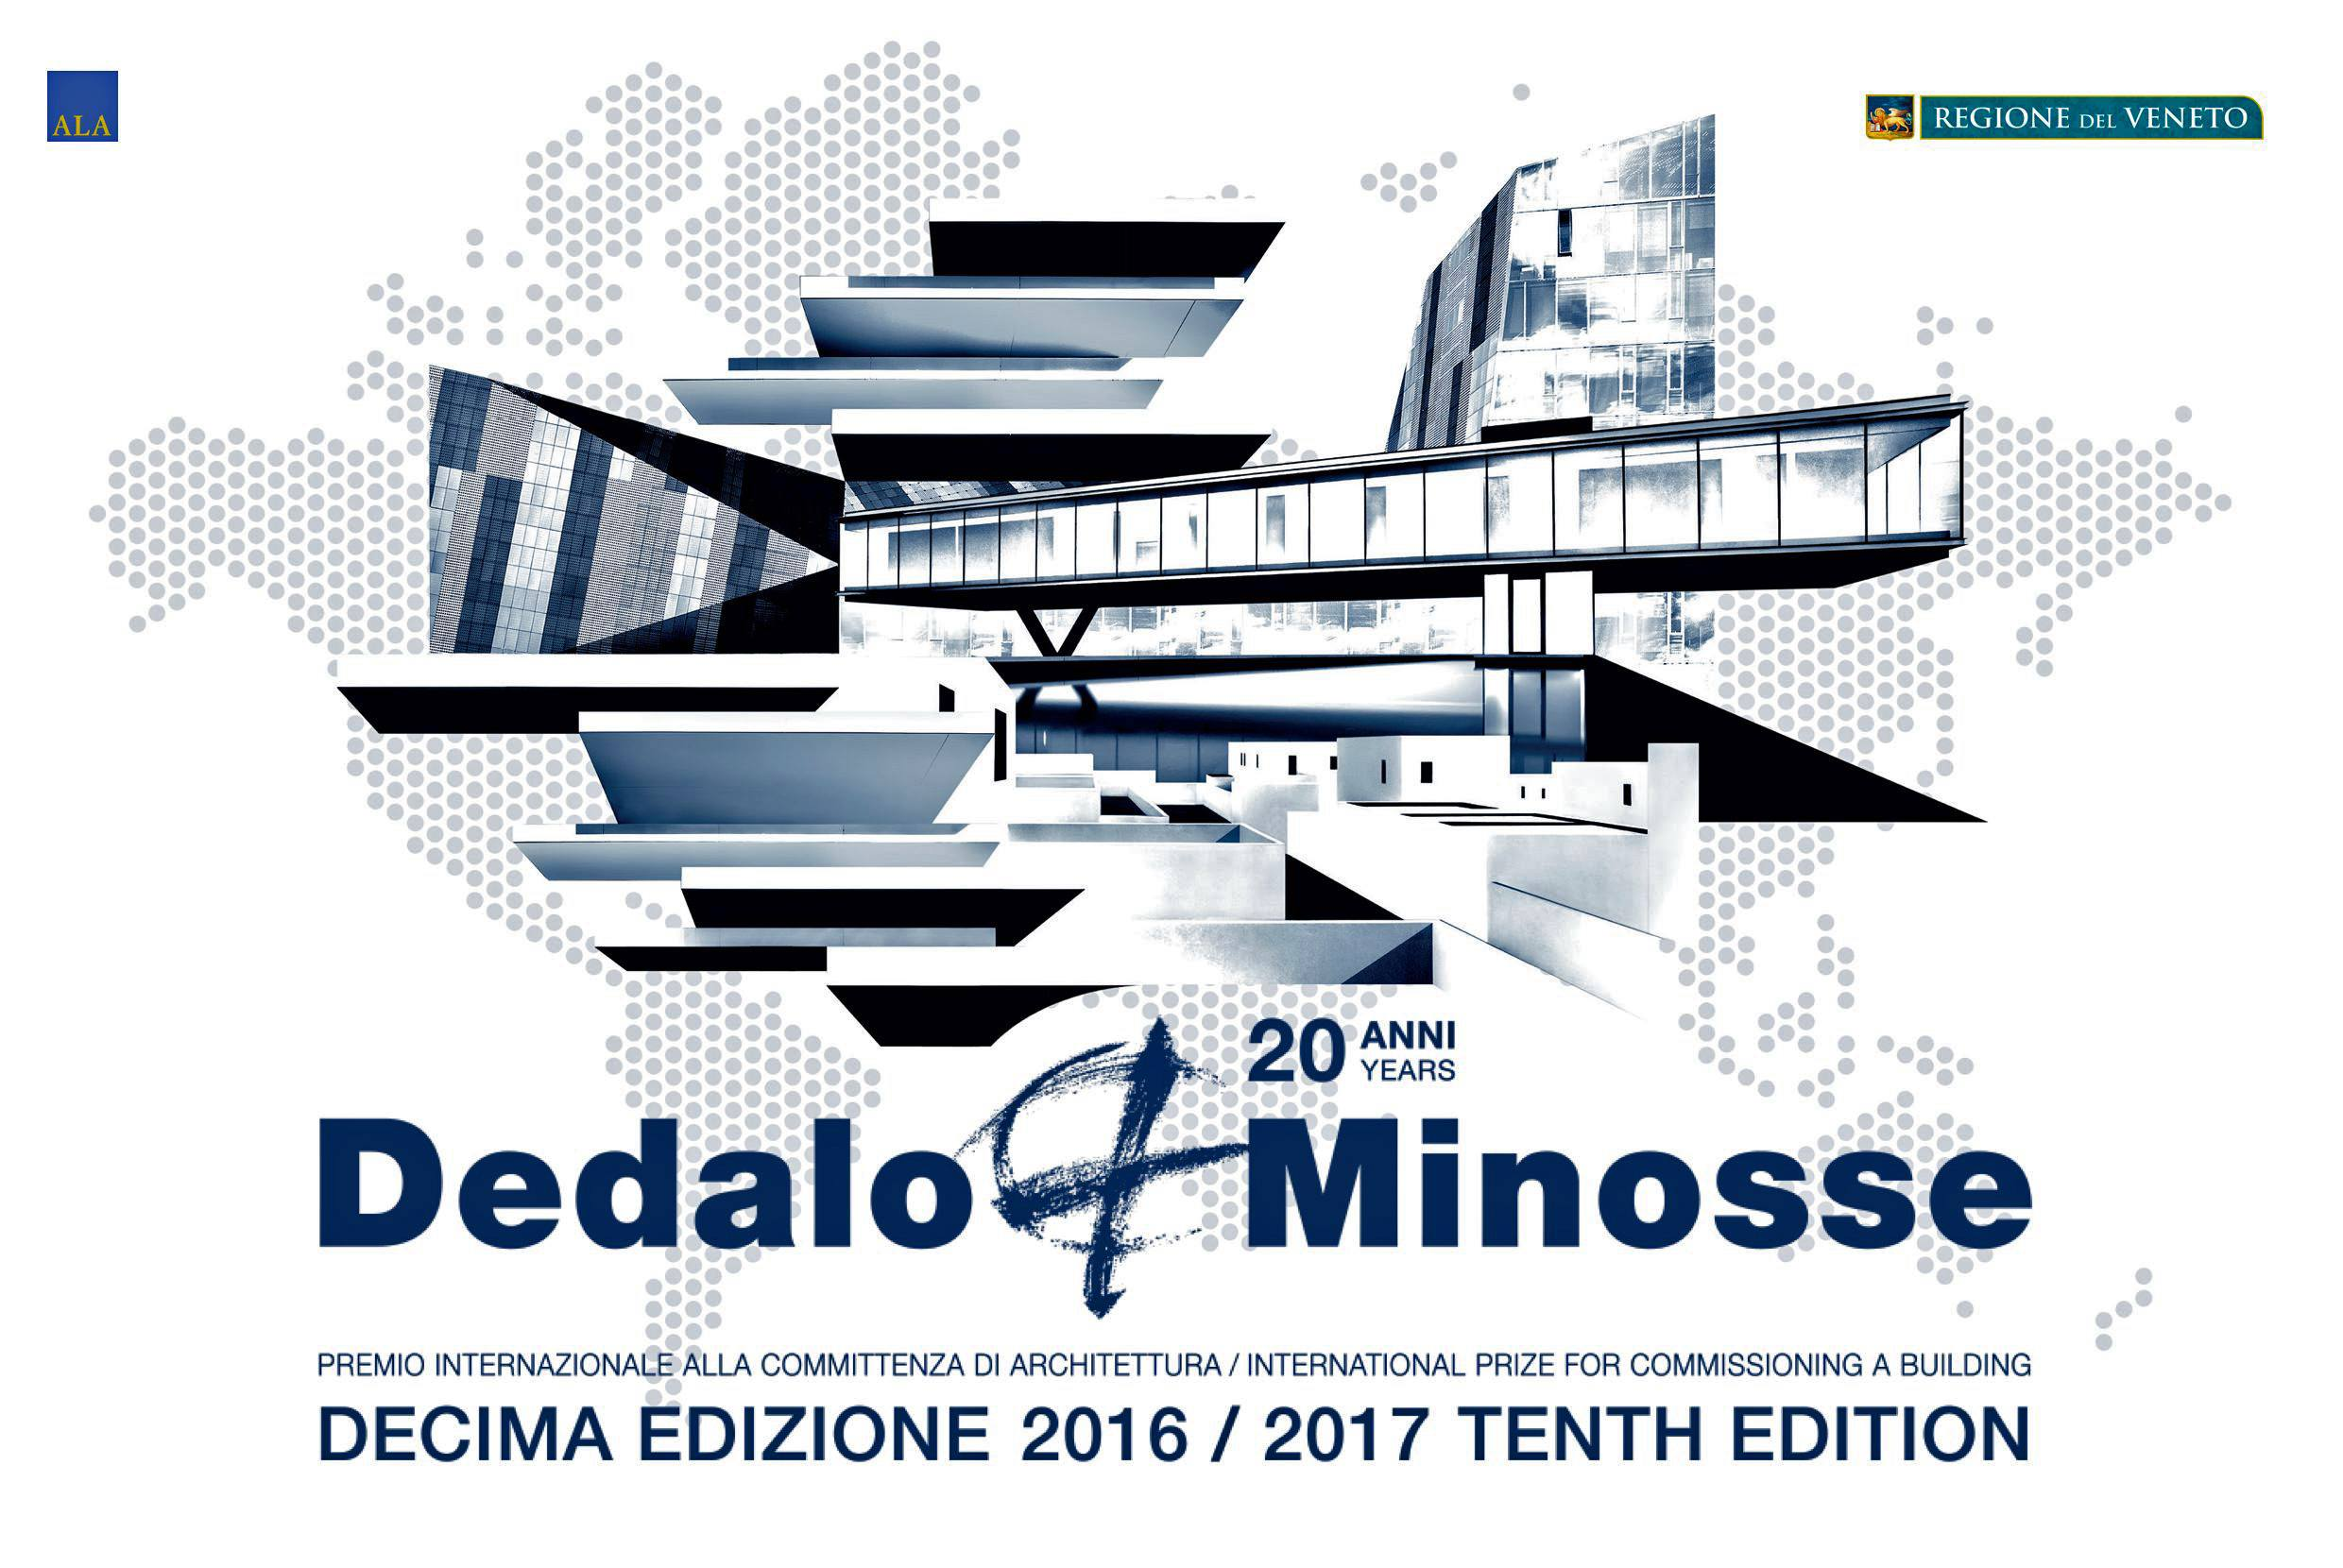 The logo for Dedalo Minosse International Prize.